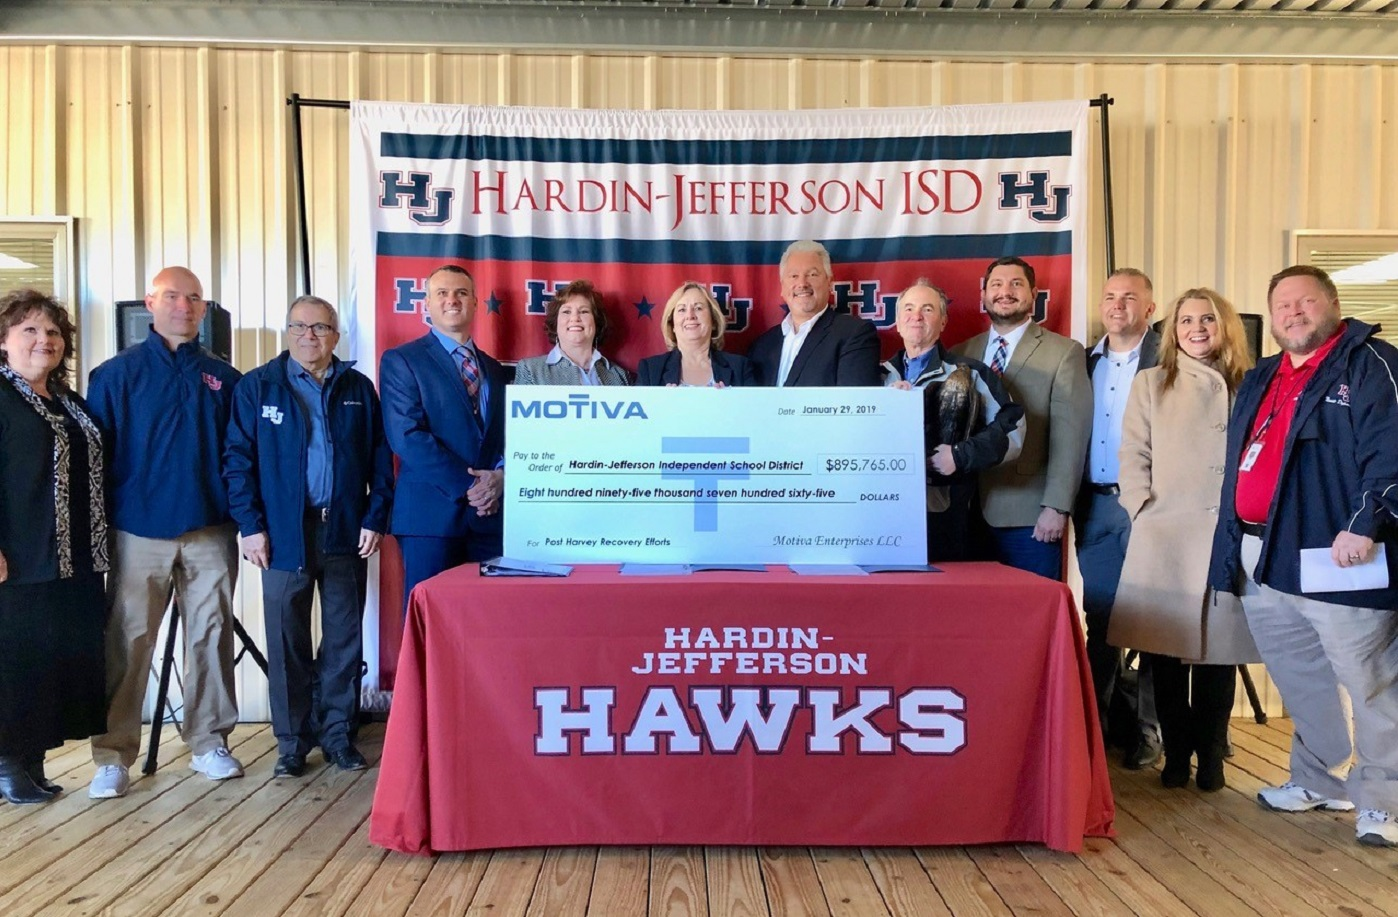 Motiva donates 890K to Hardin-Jefferson ISD